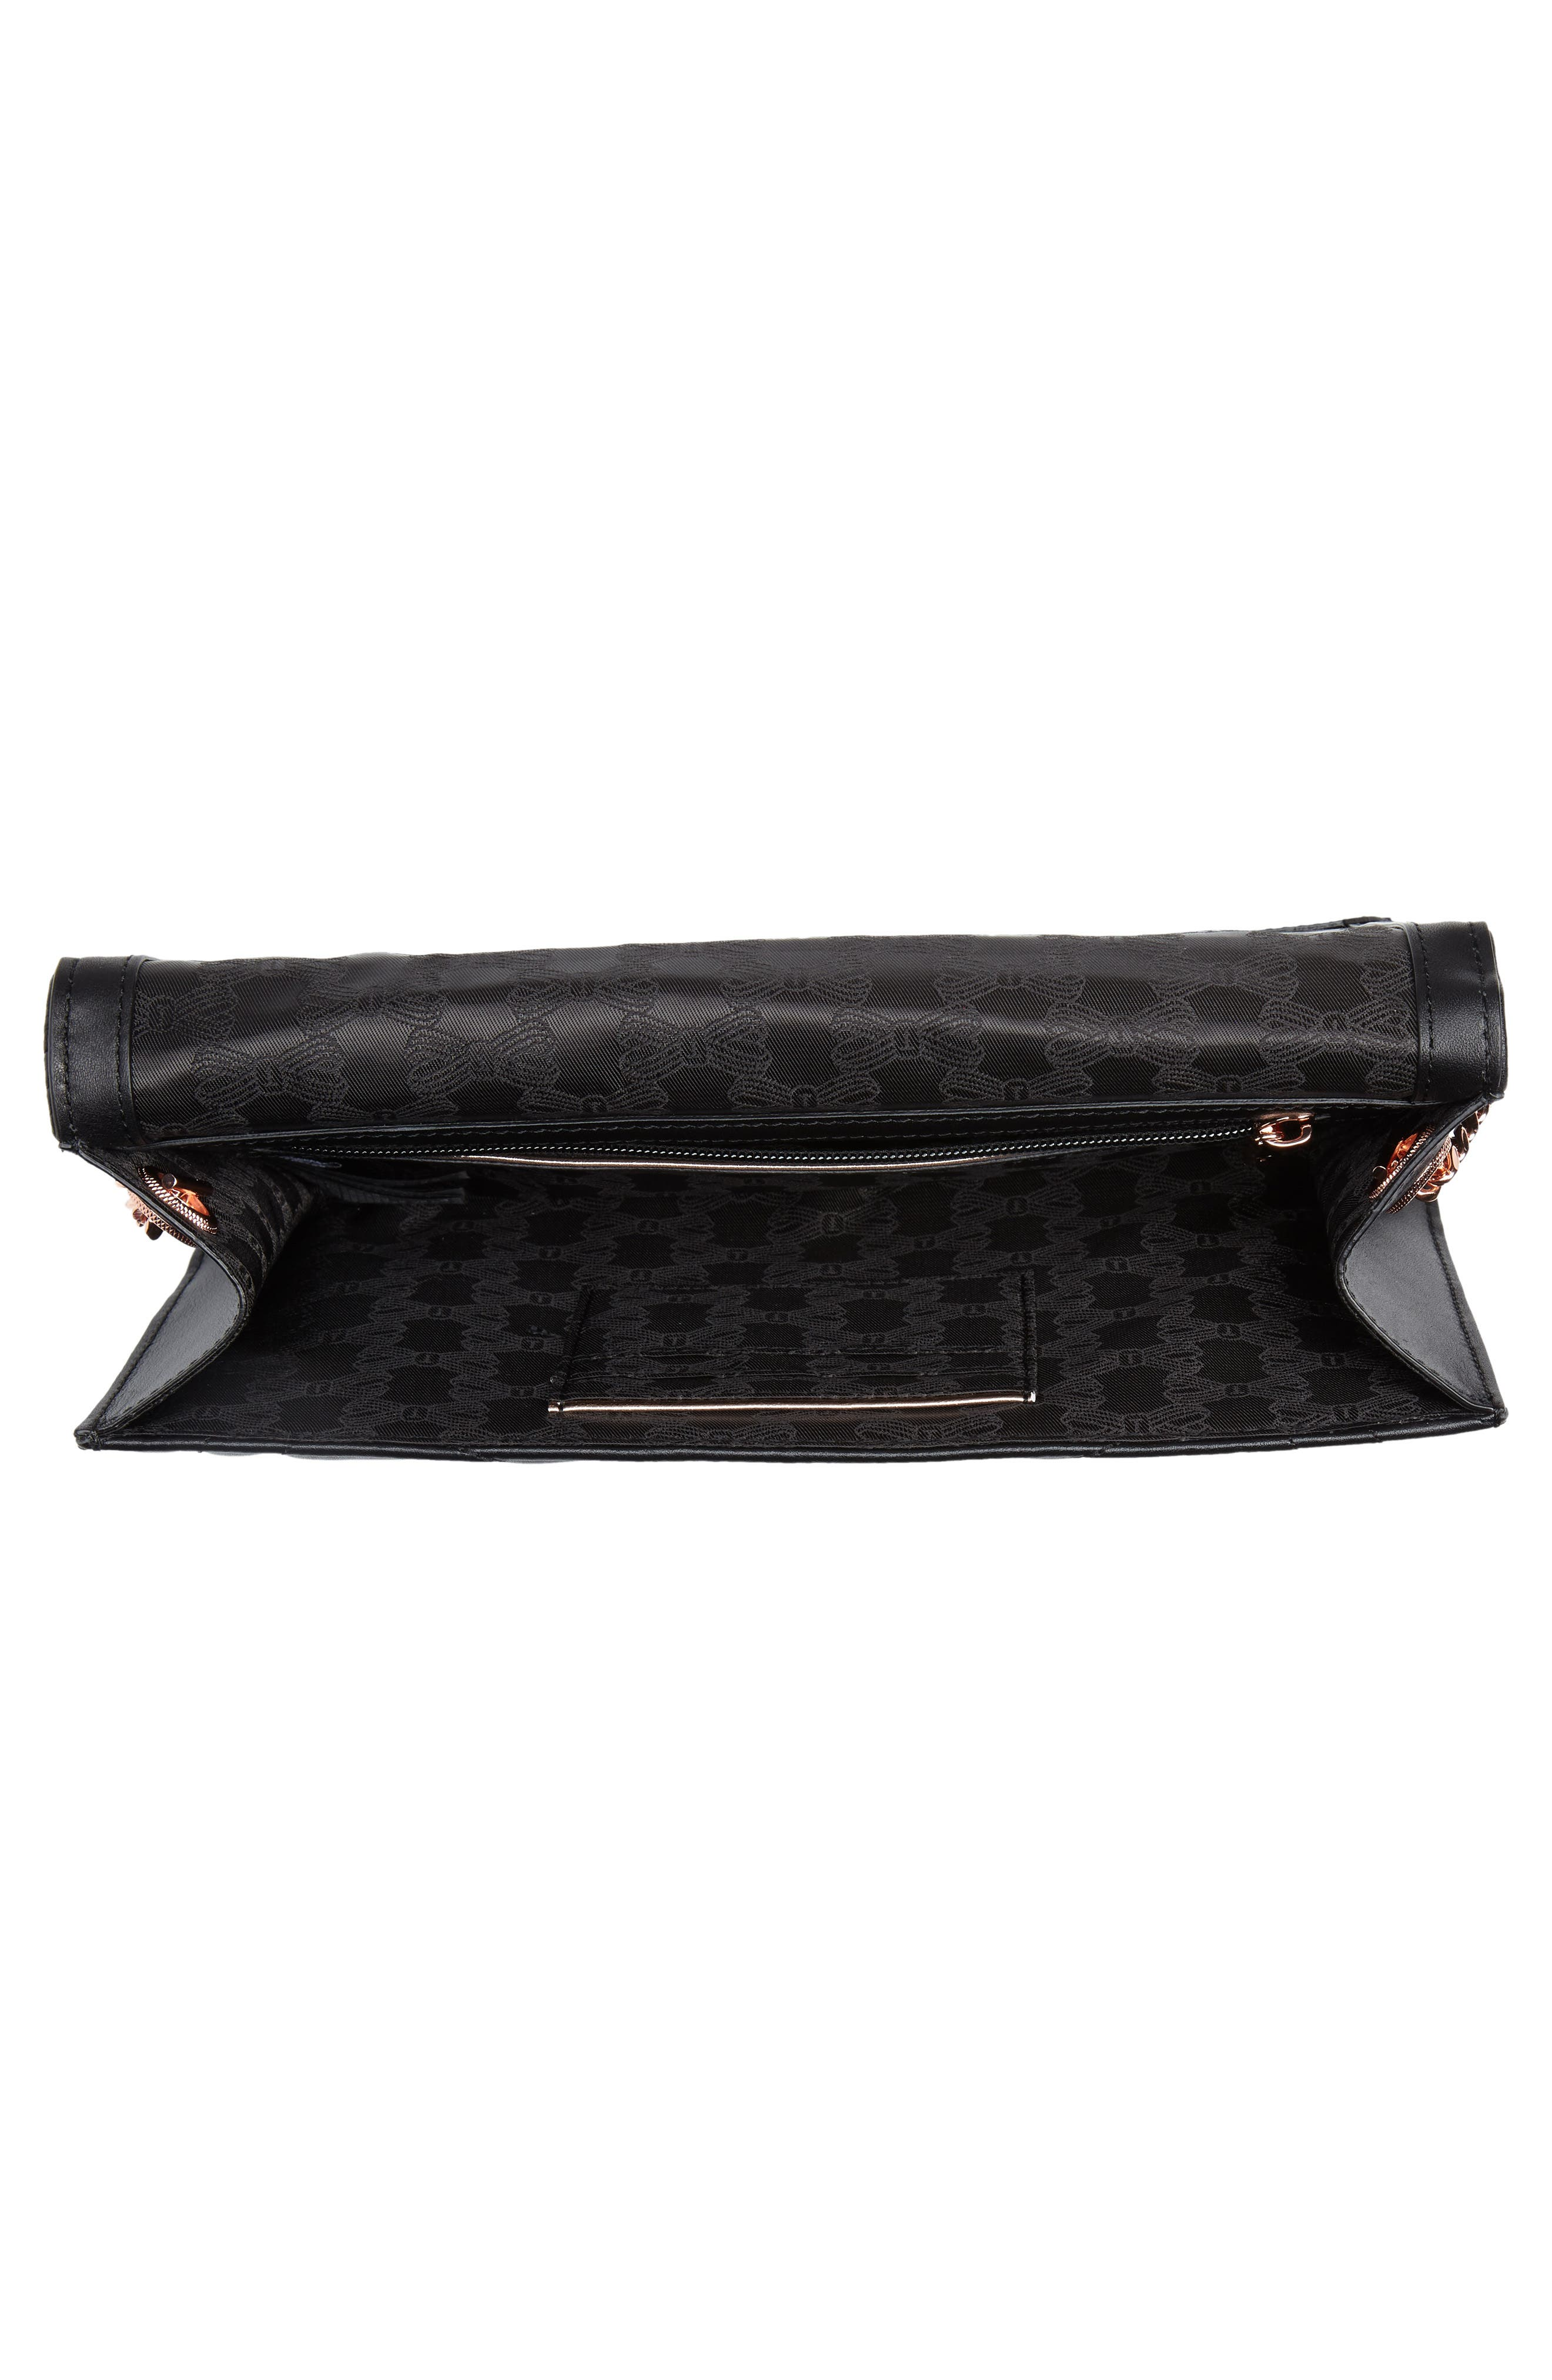 TED BAKER LONDON,                             Ciliaa Quilted Bow Leather Clutch,                             Alternate thumbnail 4, color,                             001